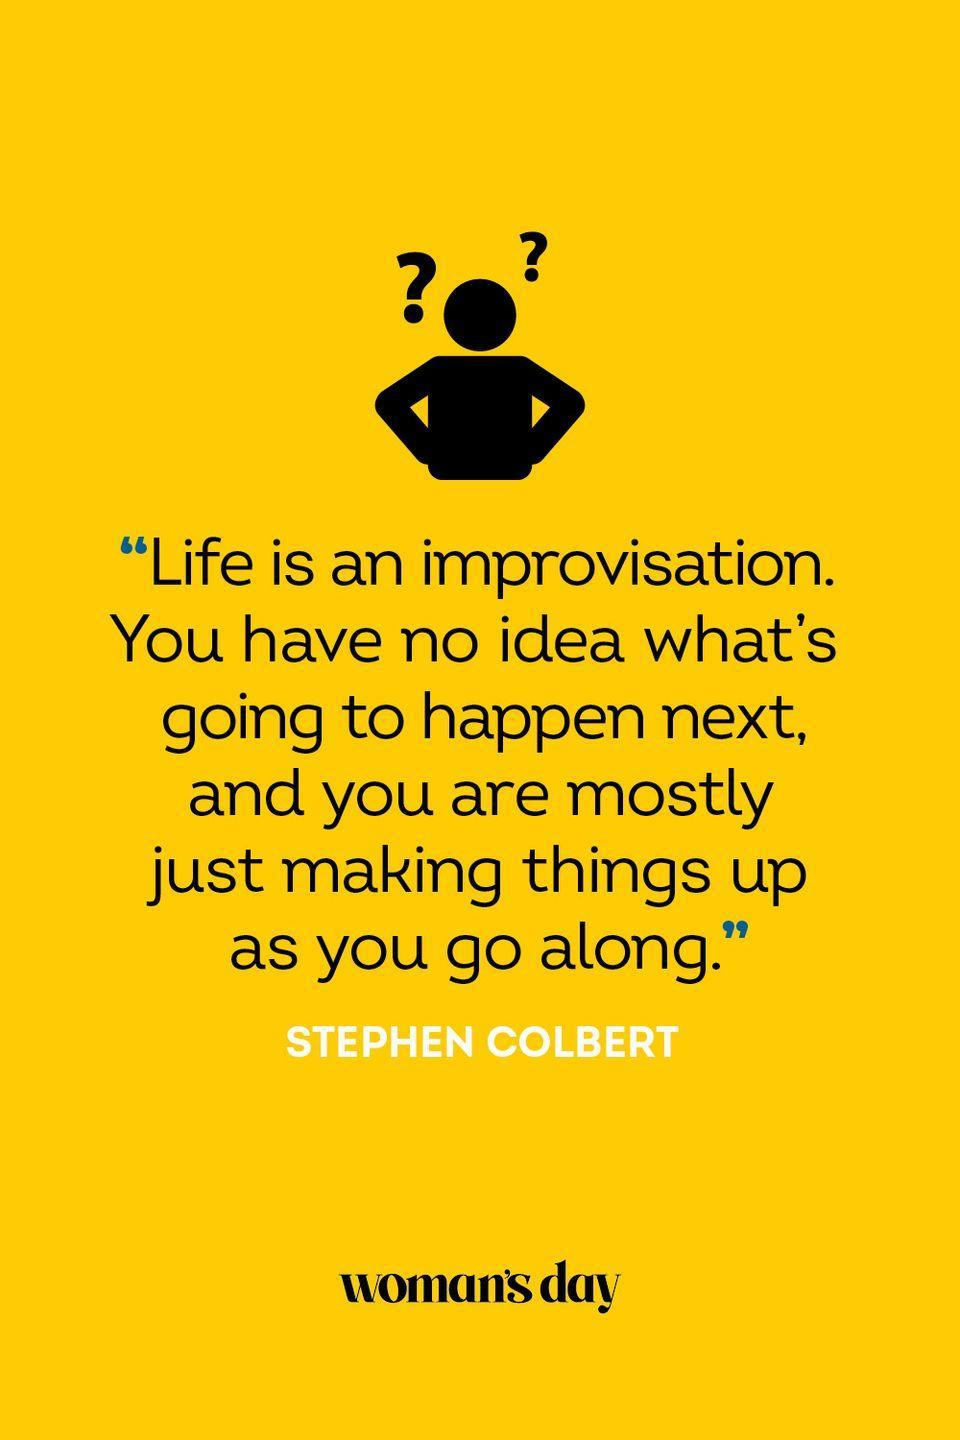 """<p>""""Life is an improvisation. You have no idea what's going to happen next, and you are mostly just making things up as you go along.""""</p>"""